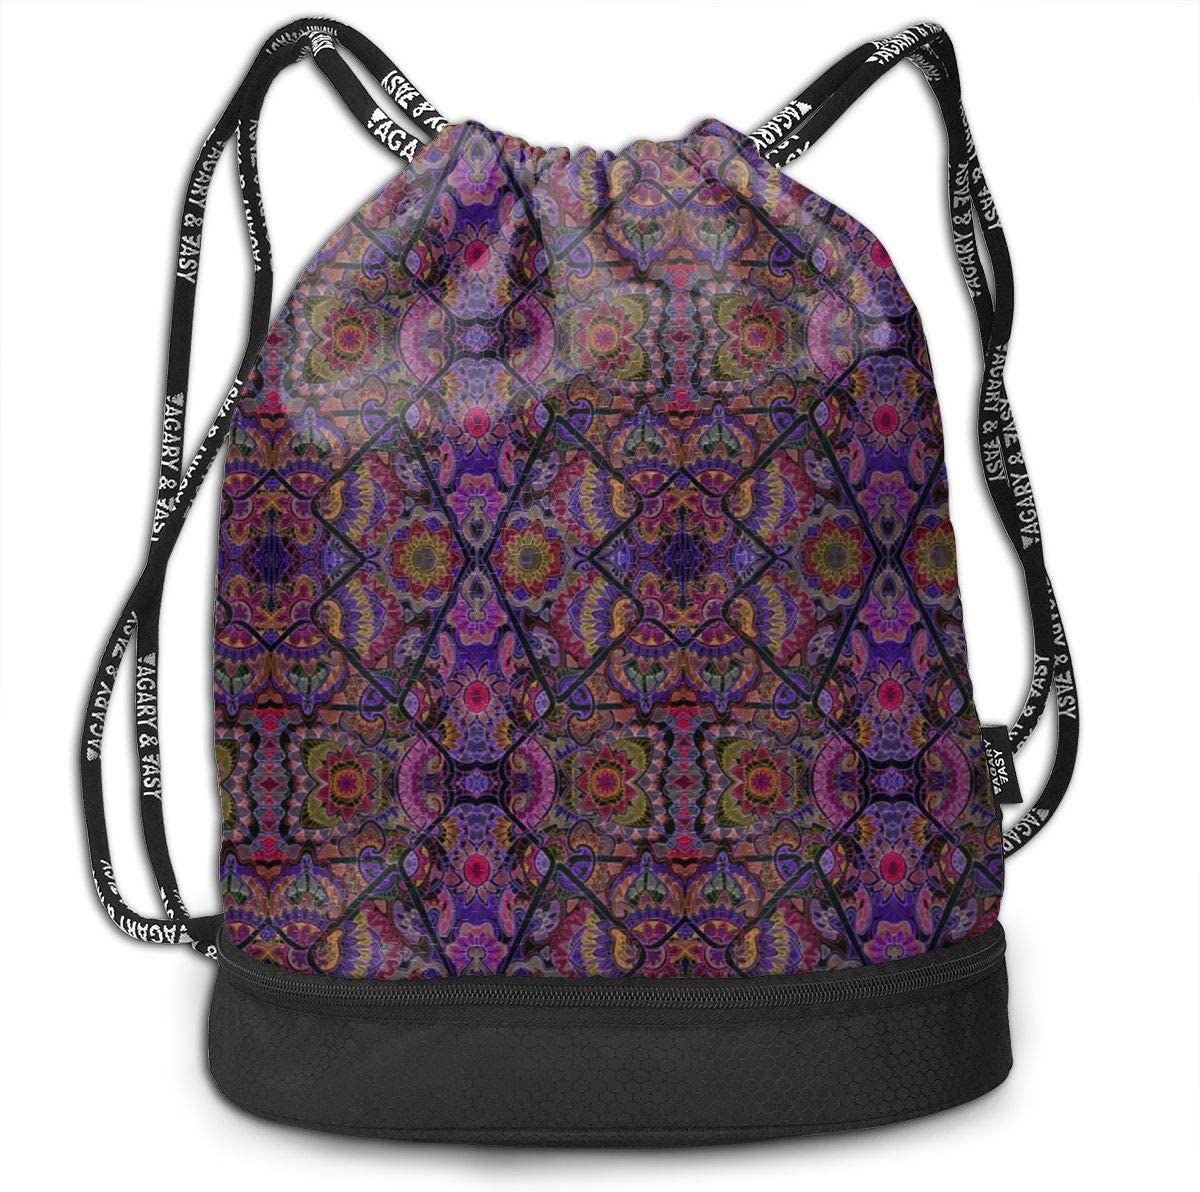 Stained Glass Glow Drawstring Backpack Sports Athletic Gym Cinch Sack String Storage Bags for Hiking Travel Beach